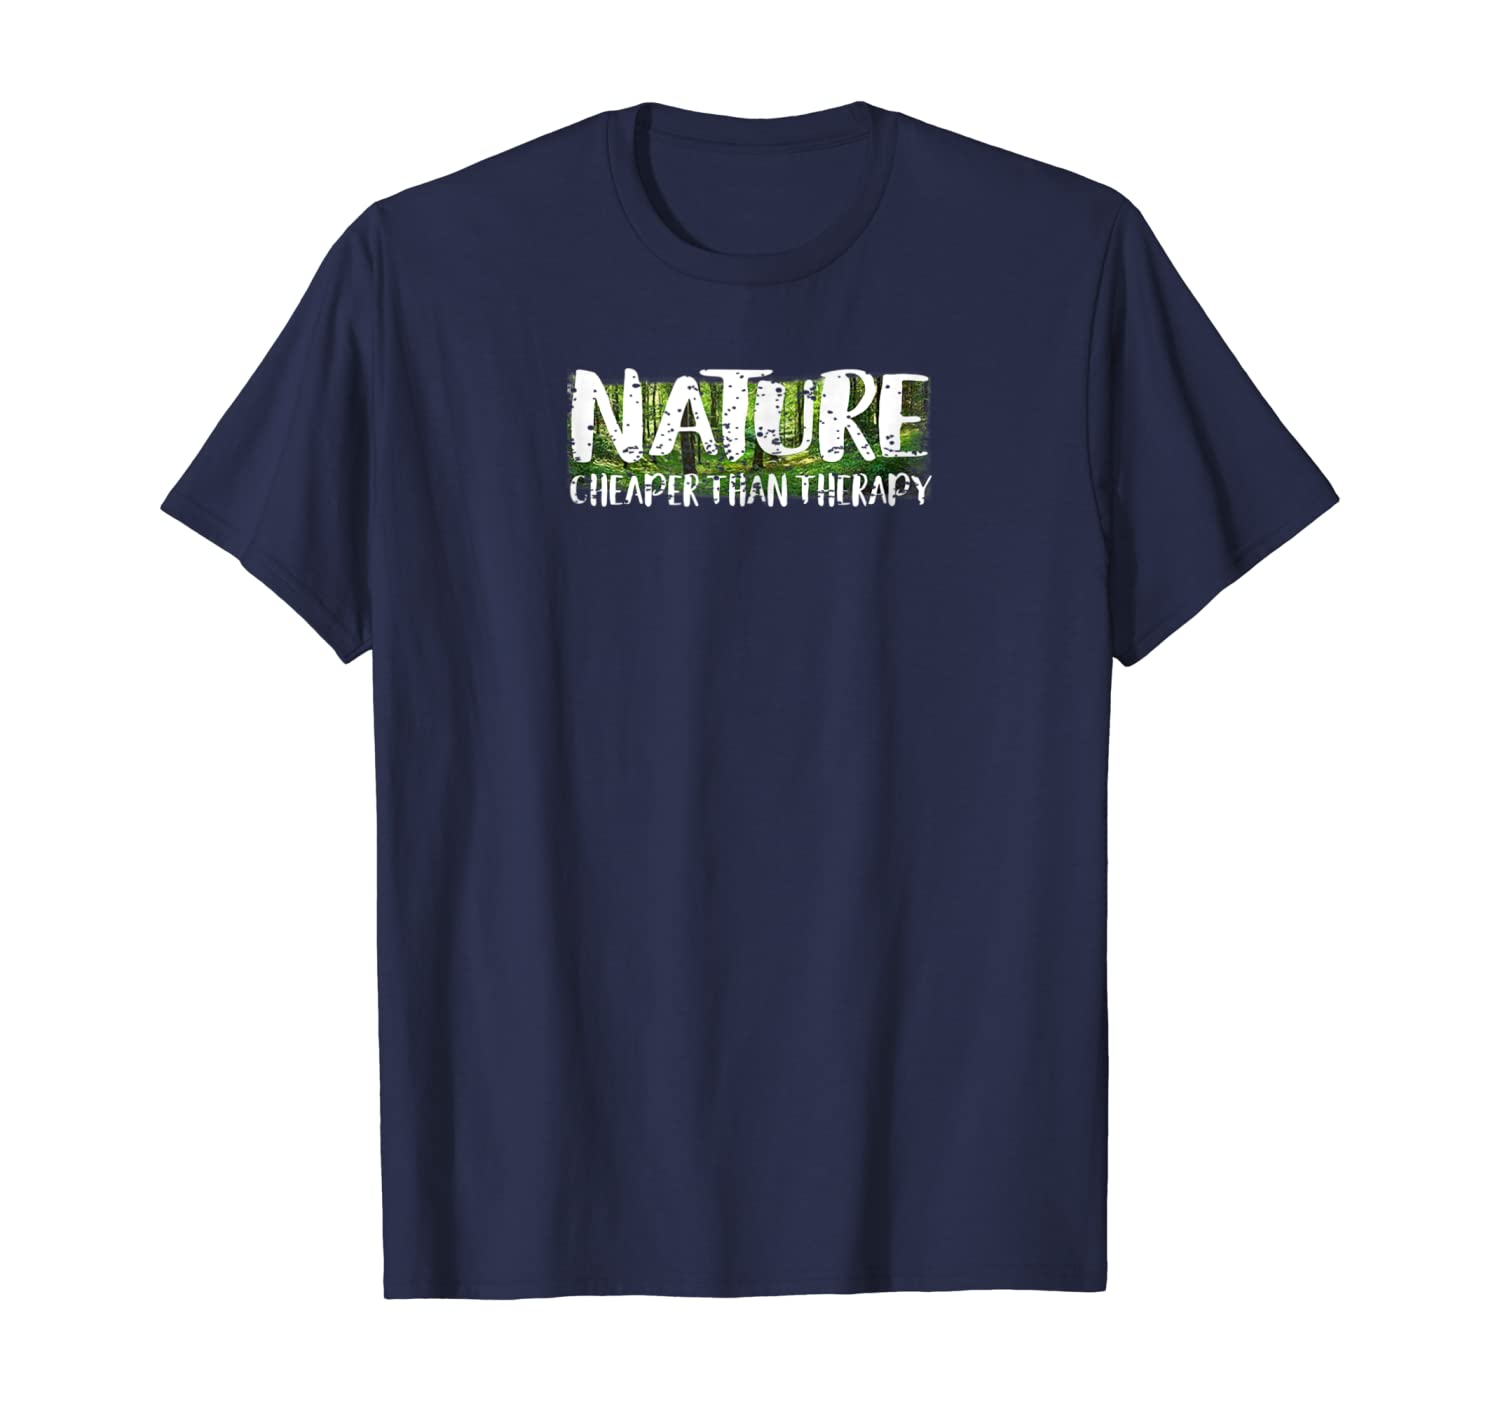 NATURE - Cheaper than Therapy T-Shirt